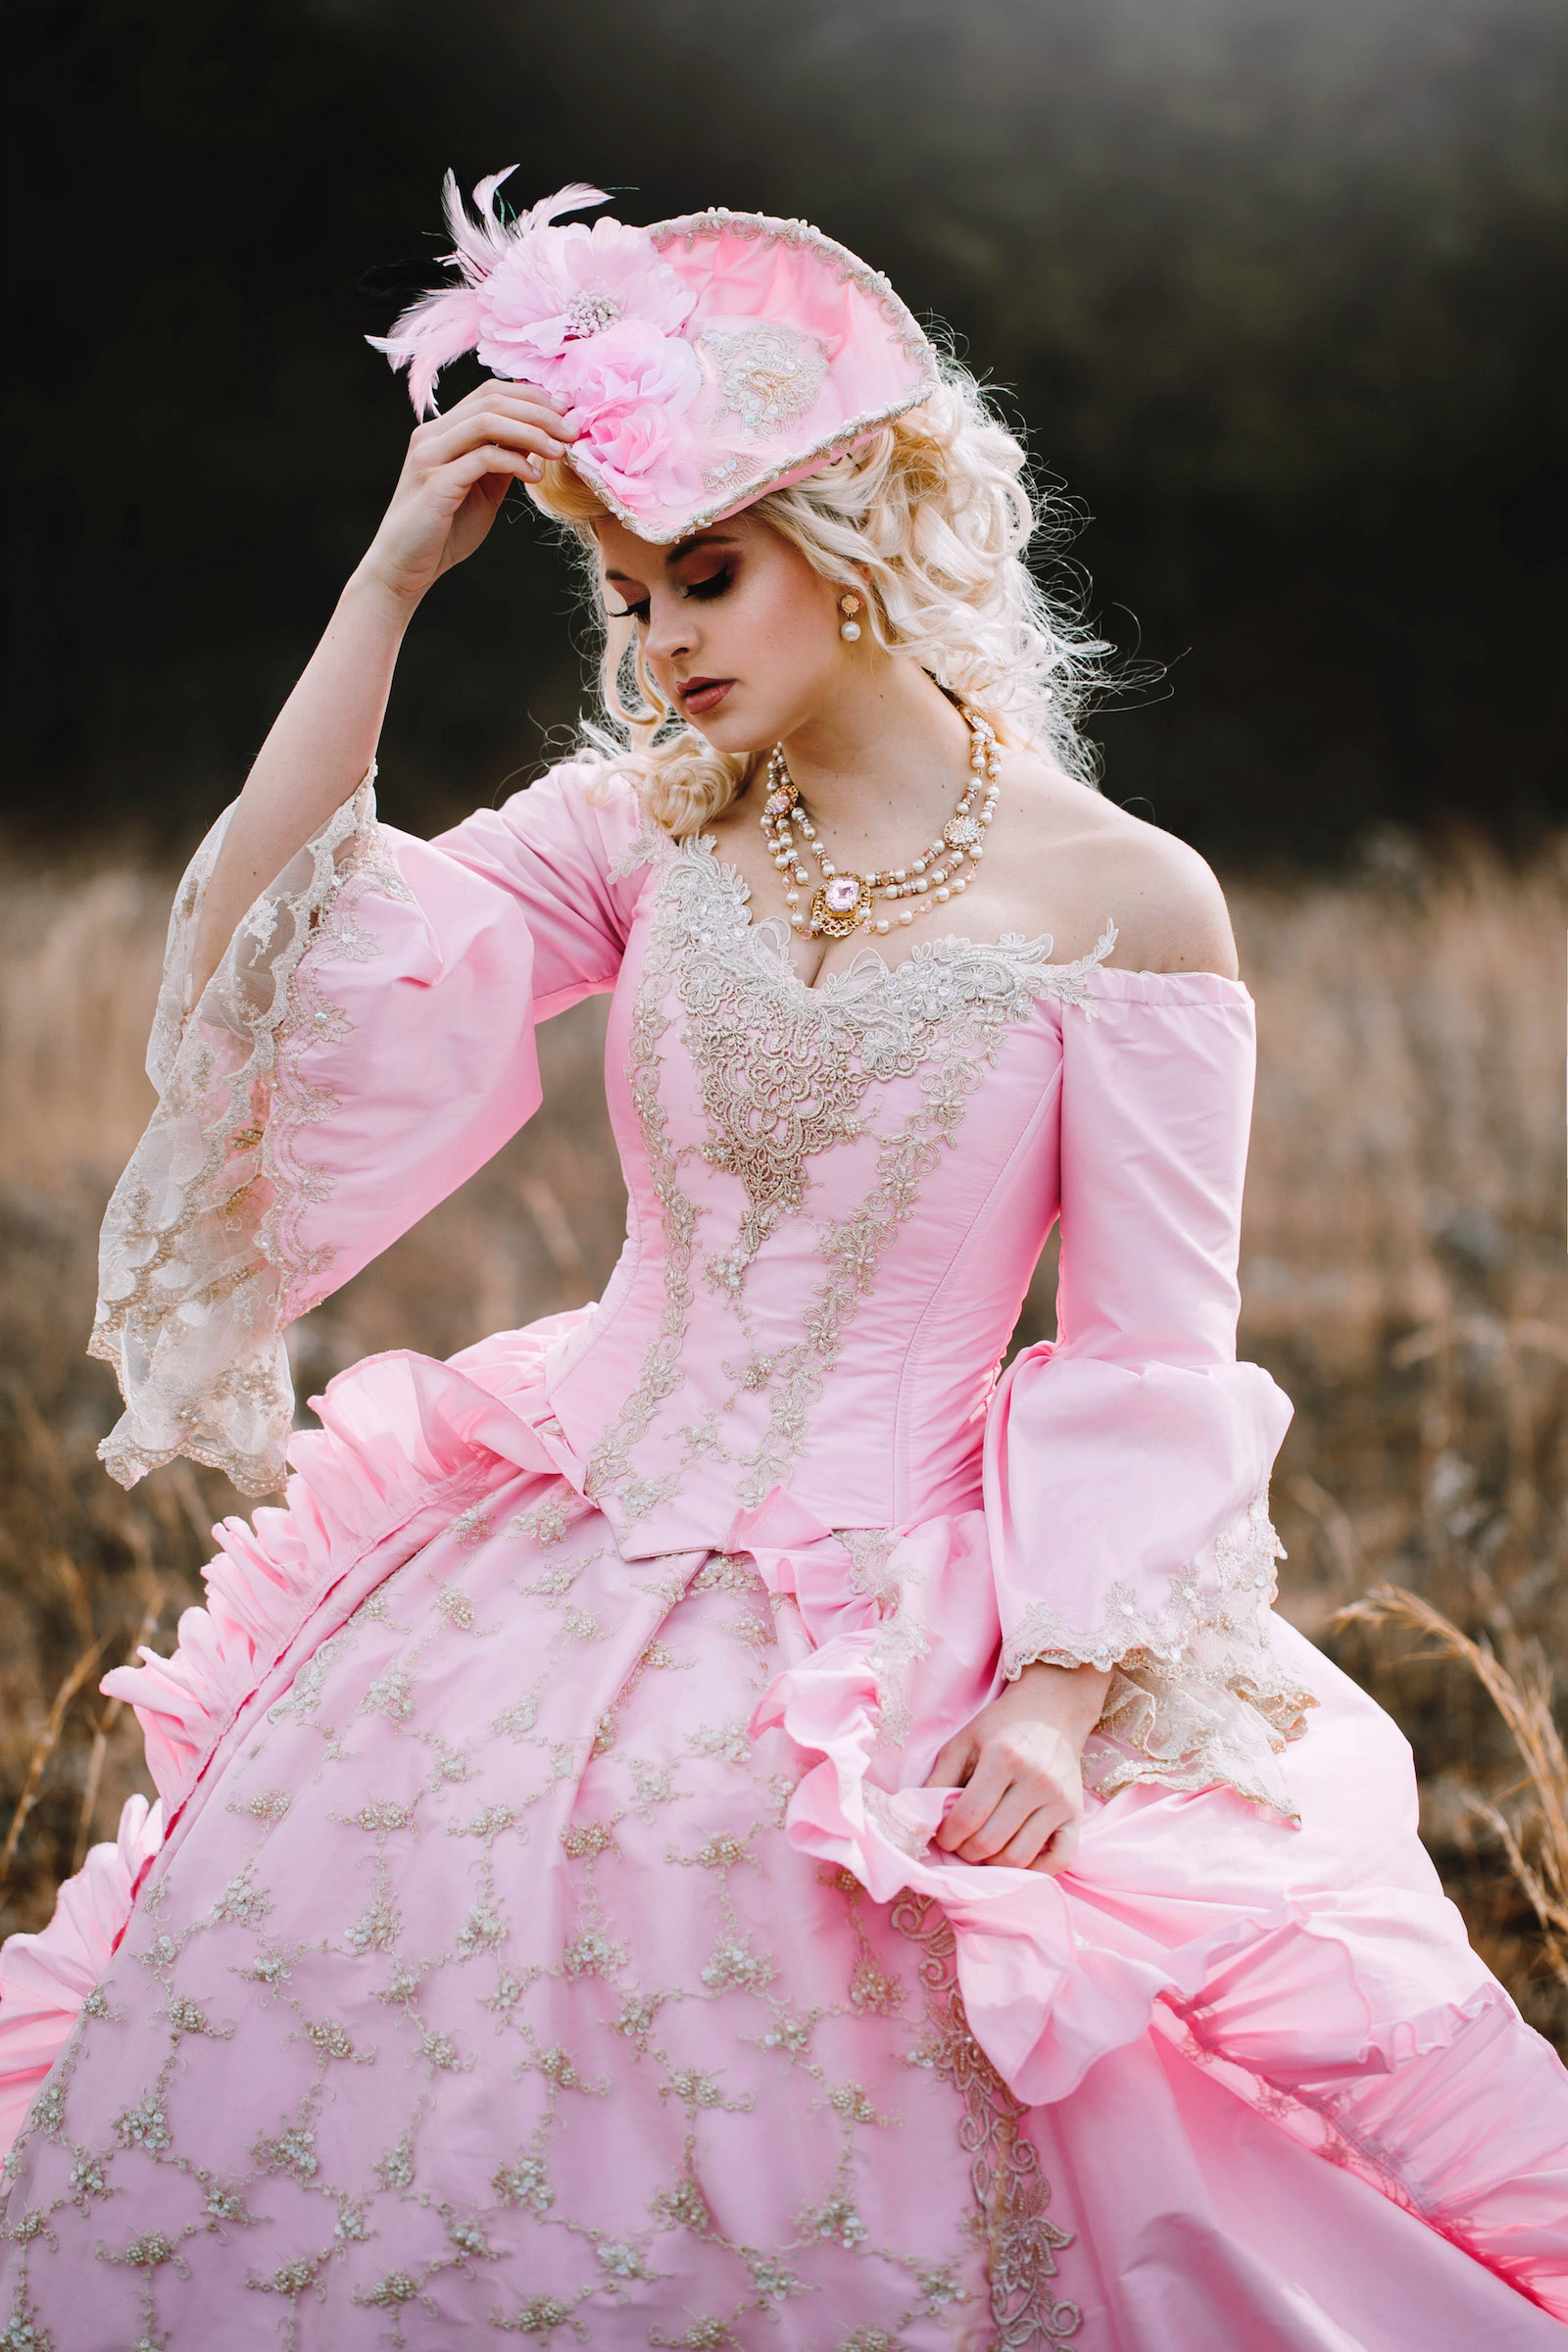 Catchy Me Costumes Marie Antoinette Medieval Wedding Marie Antoinette Gothic Wedding Gowns Renaissance Festival Wedding Dresses Renaissance Wedding Dresses wedding dress Renaissance Wedding Dress